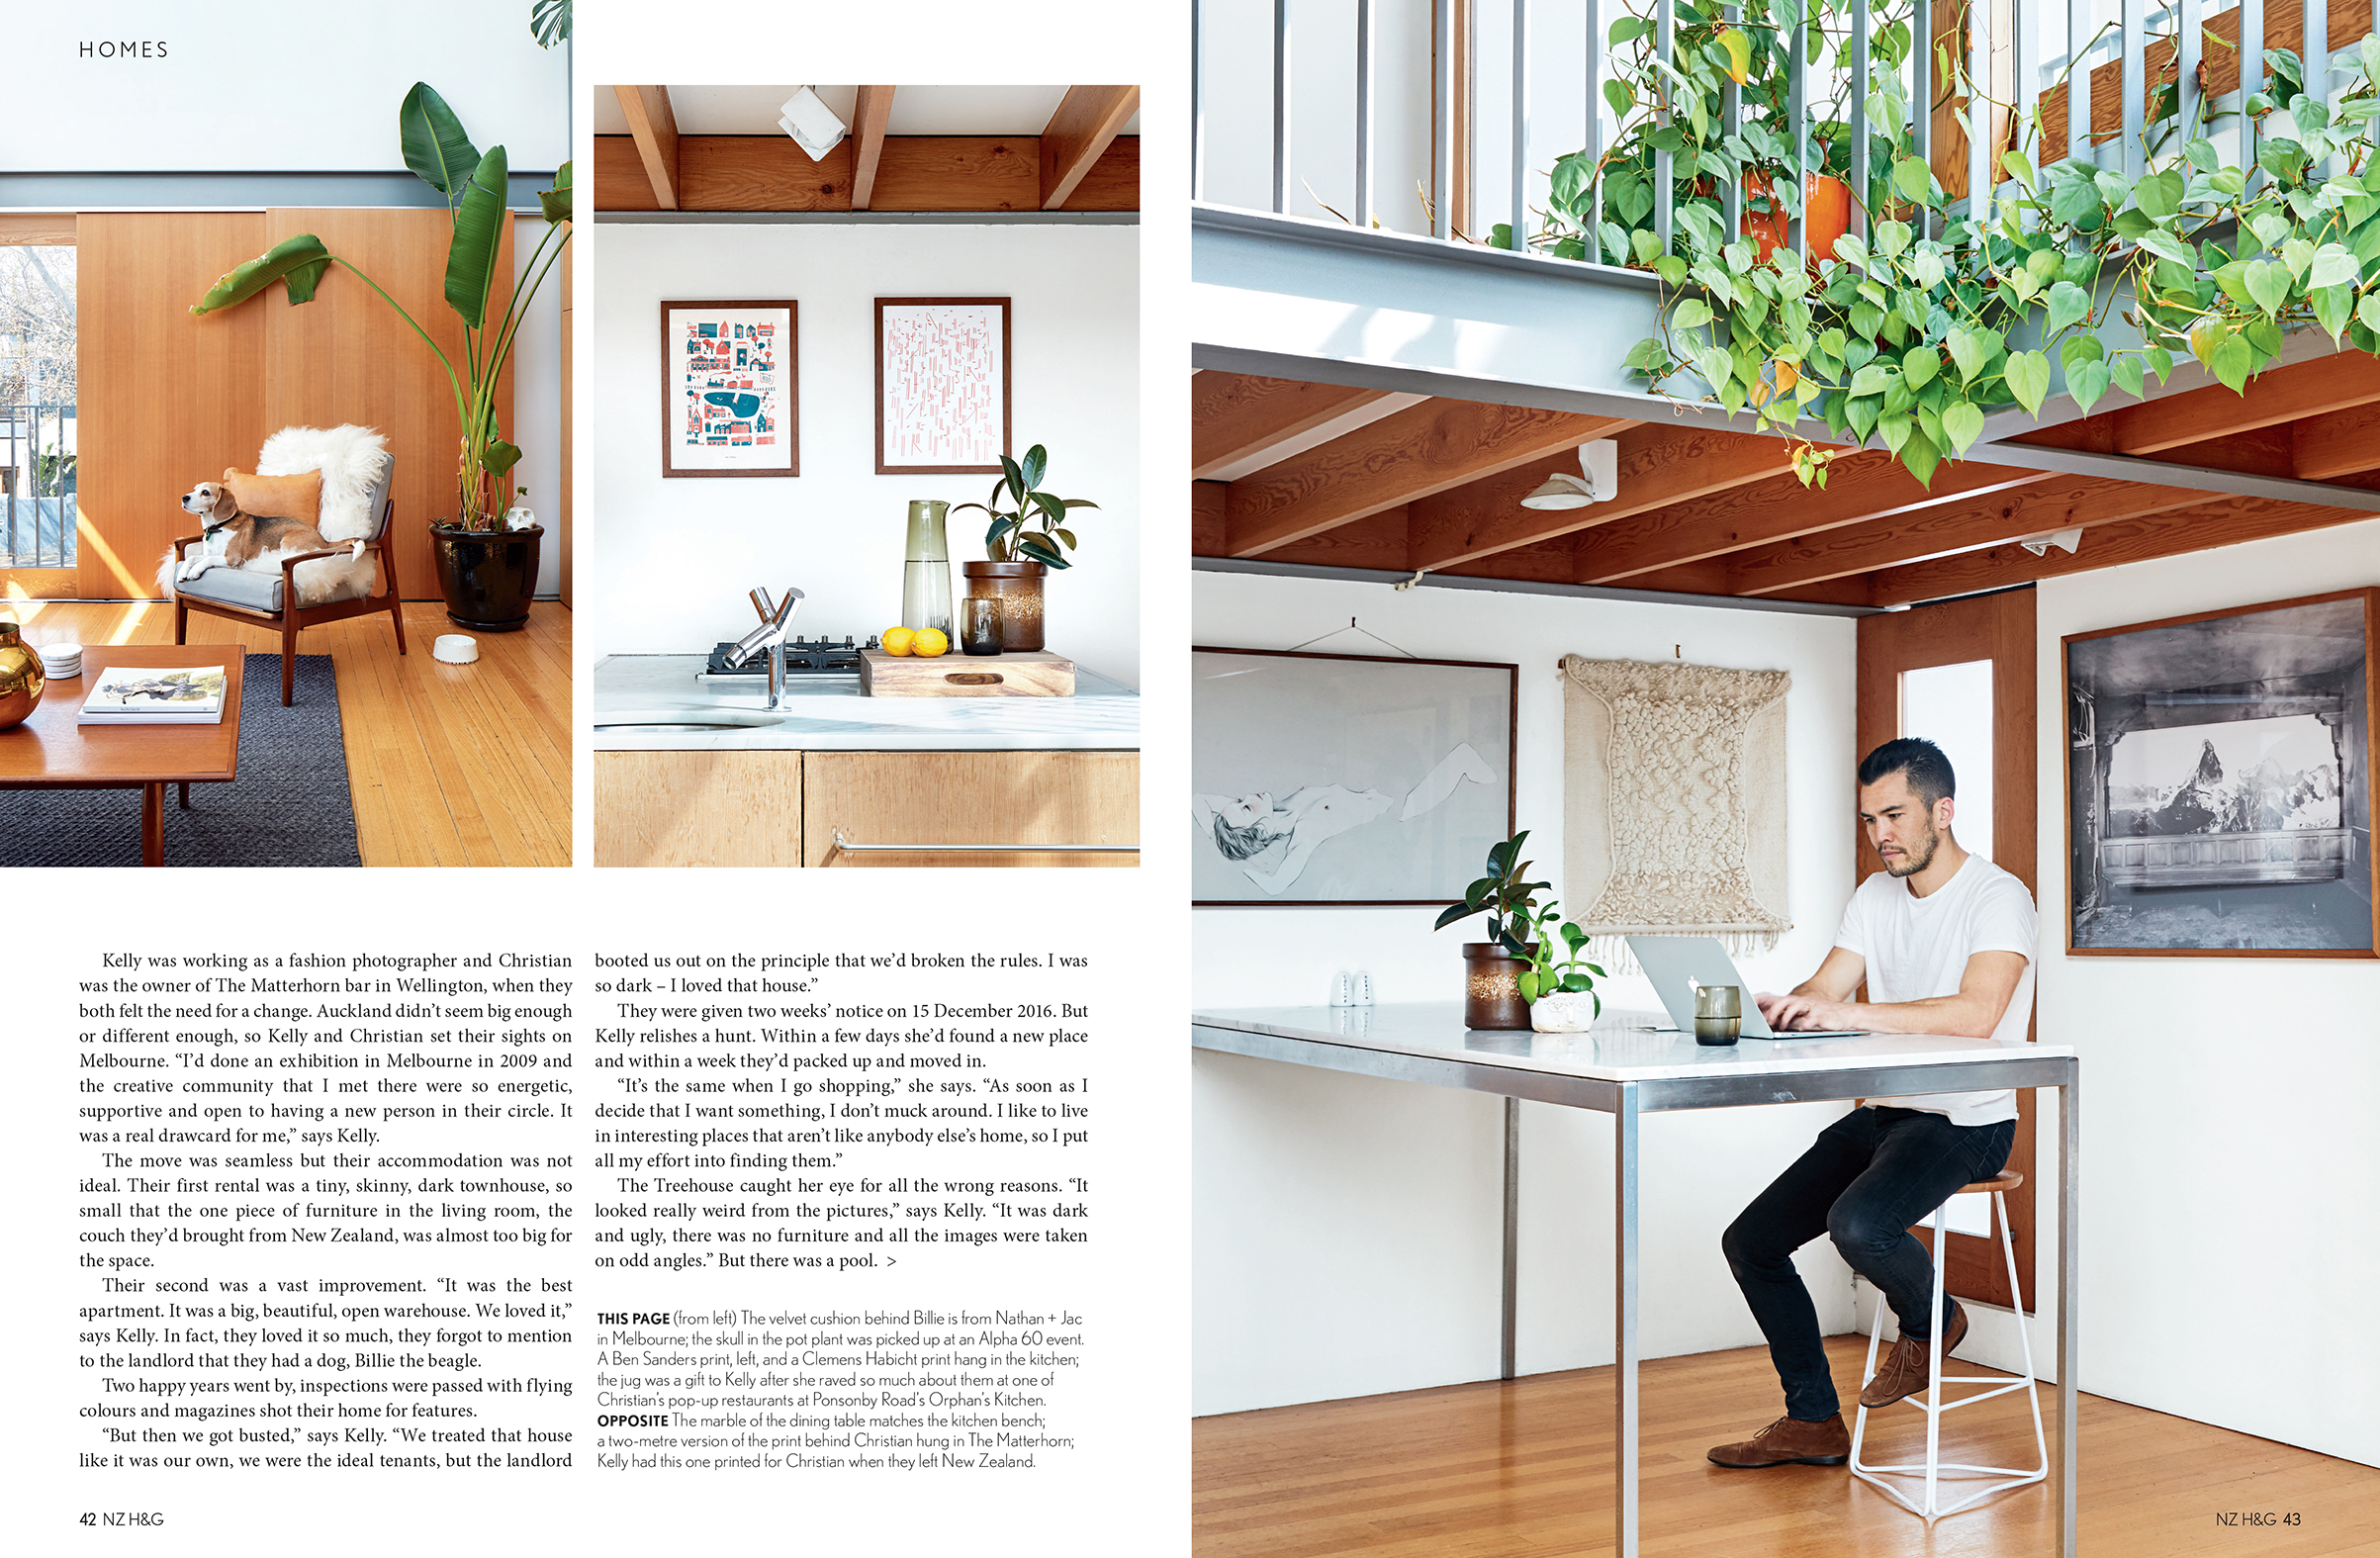 Kelly Thompson's home featured in NZ House and Garden Magazine www.kellythompsoncreative.com